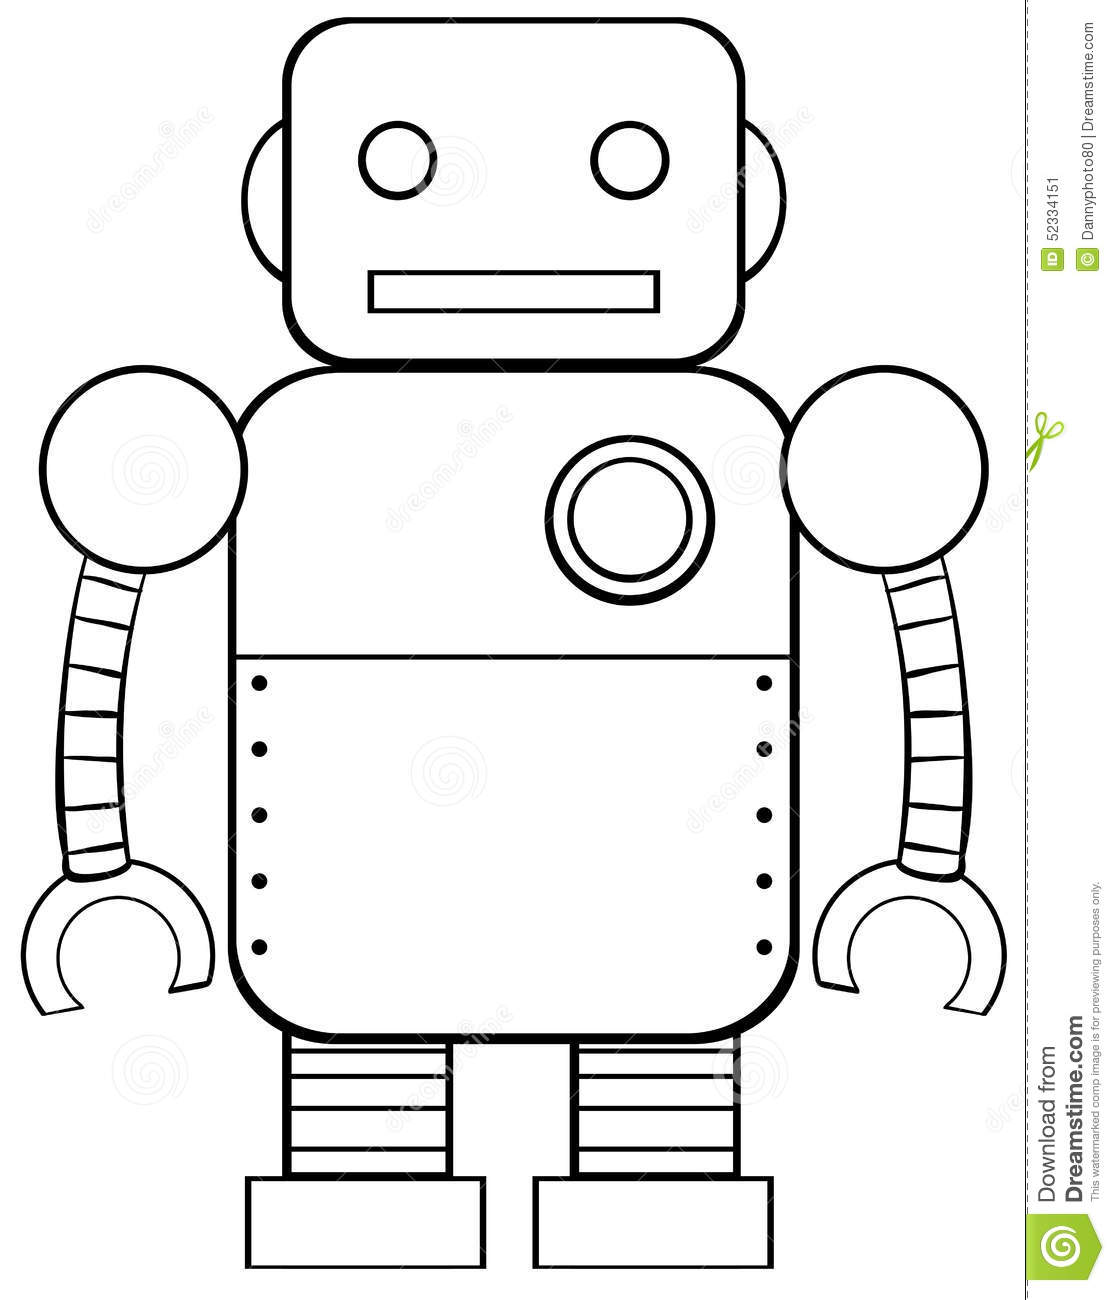 Square Robot Stock Vector. Illustration Of Background